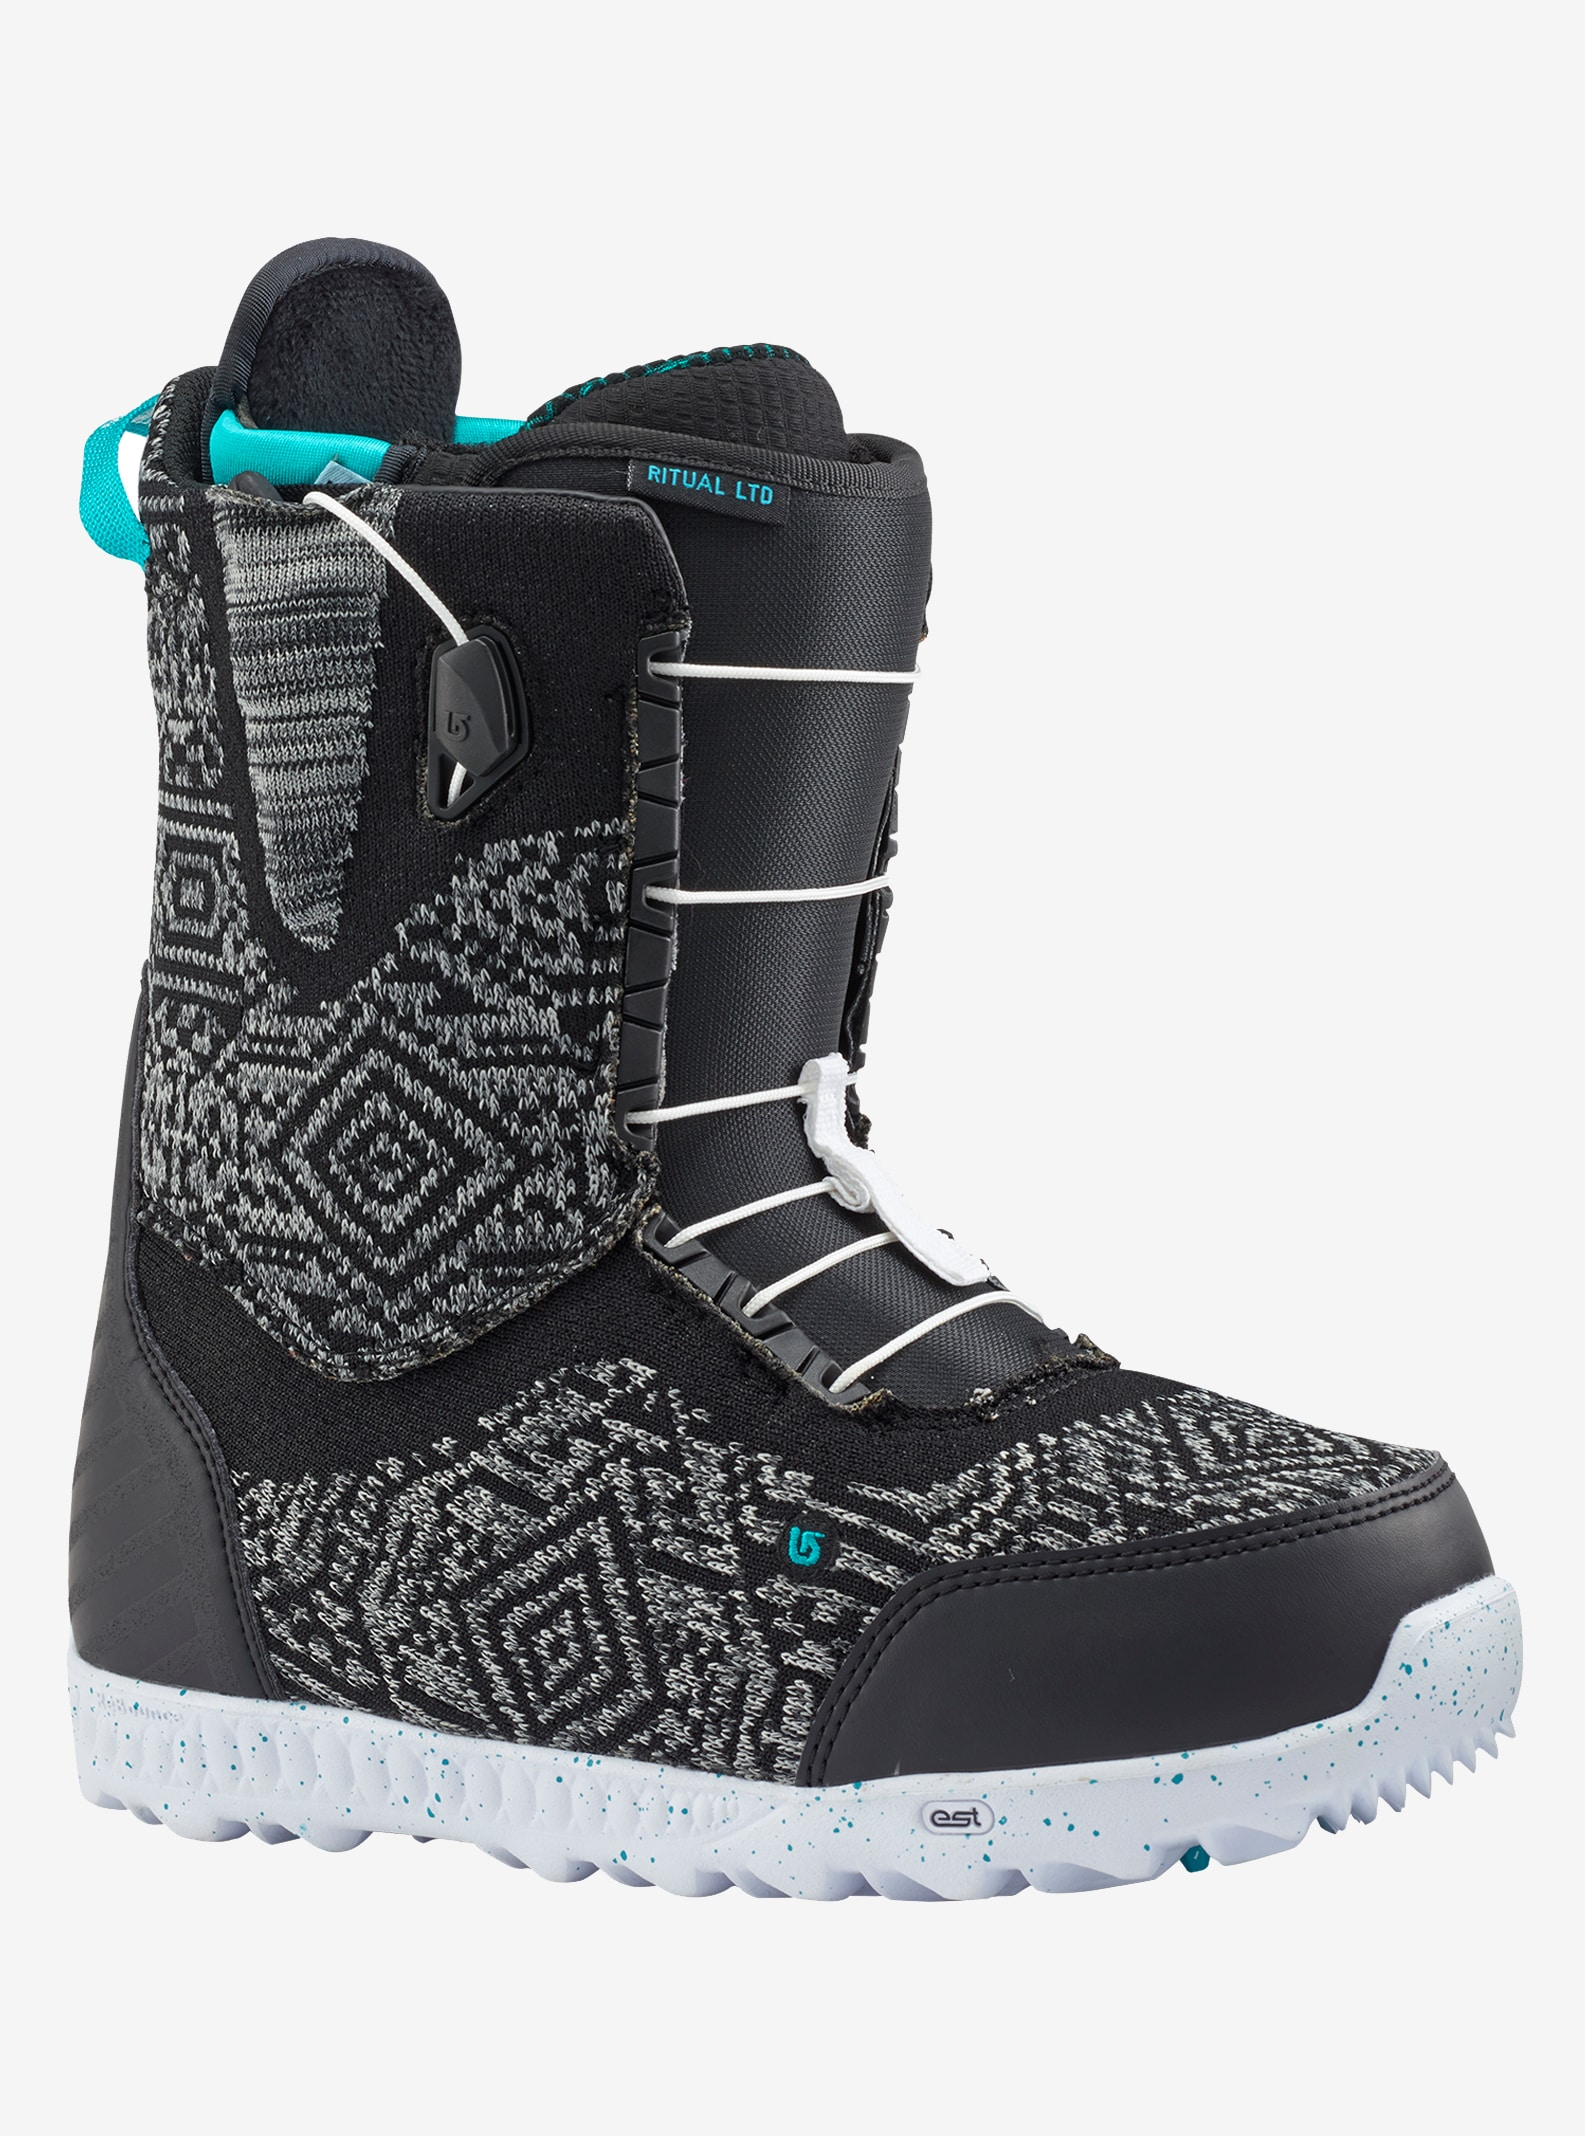 Women's Burton Ritual LTD Snowboard Boot shown in Black / Multi